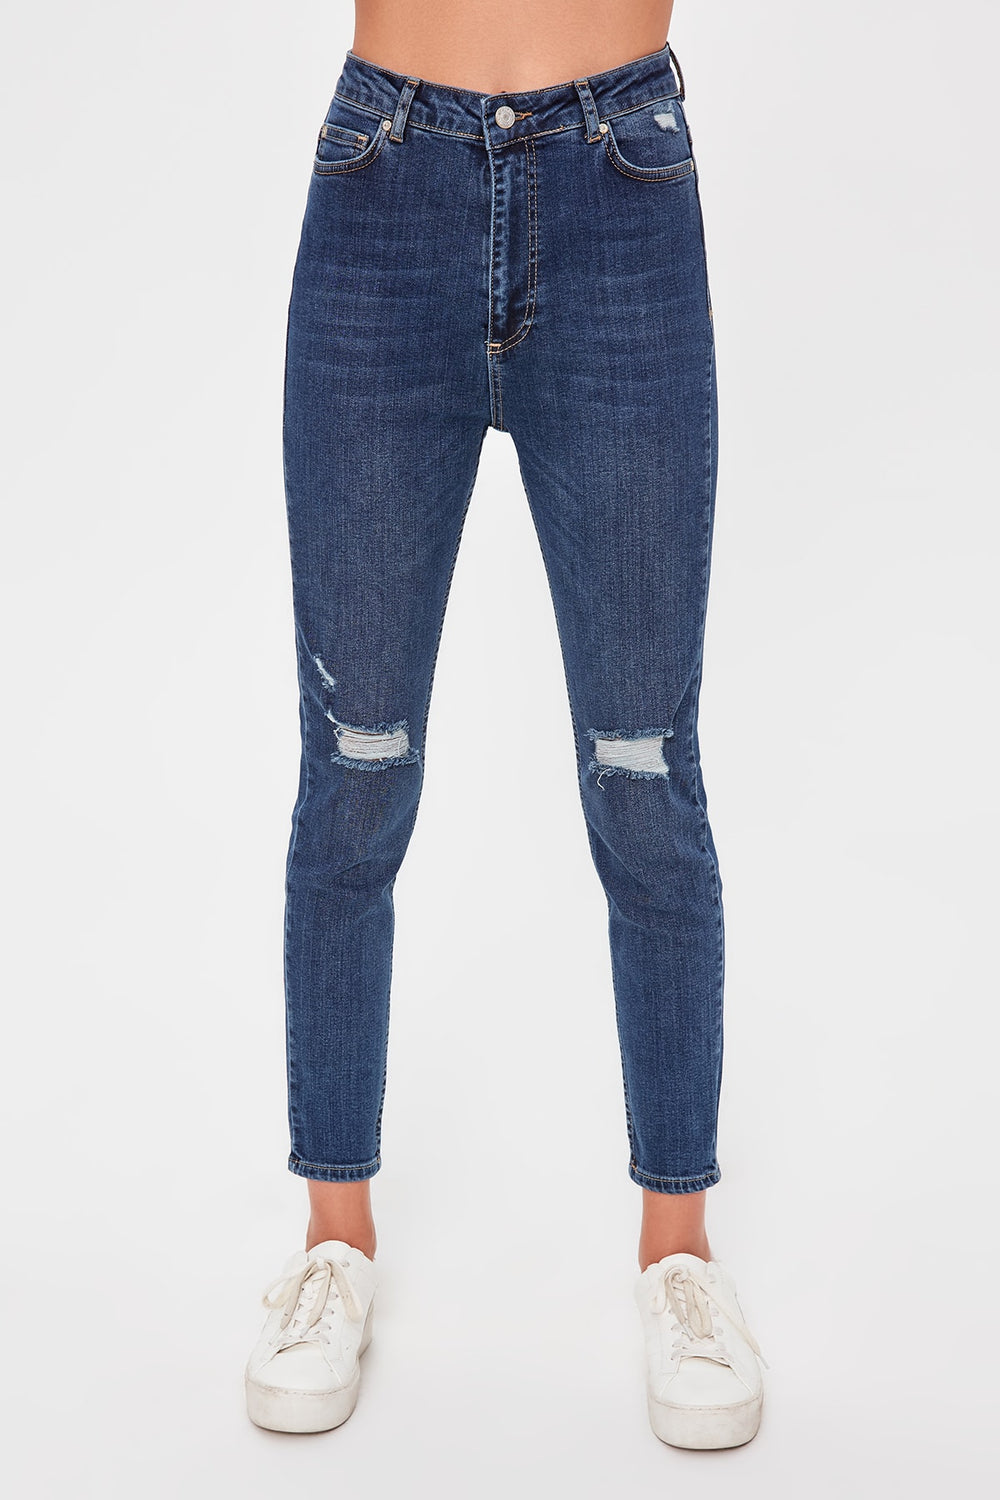 Miss Zut Miss Zut Blue Ripped Detailed High Waist Slim Fit Jeans Miss Zut &CO